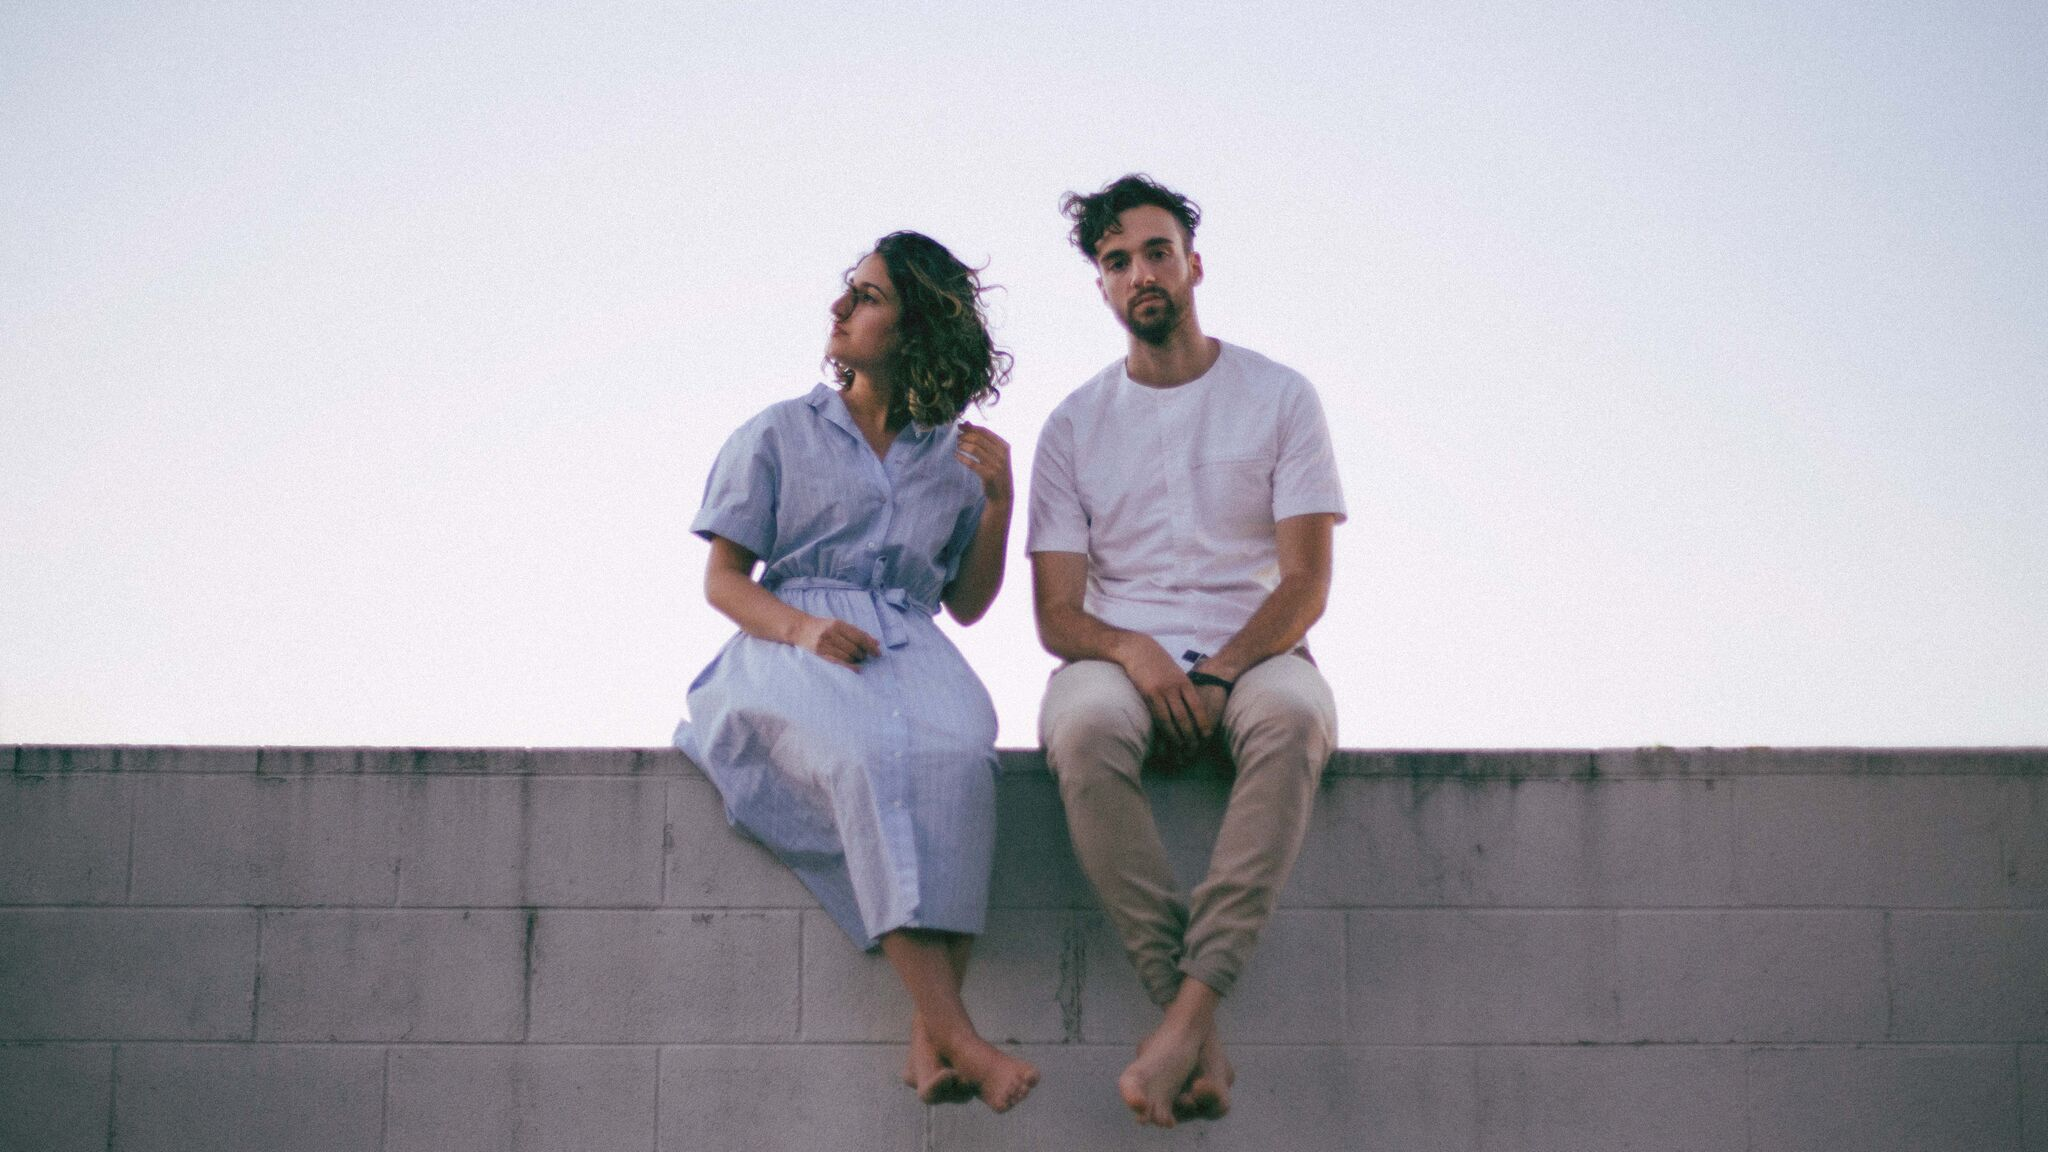 Vallis Alps' New Single 'So Settled' Pushes The Duo's Musical Boundaries